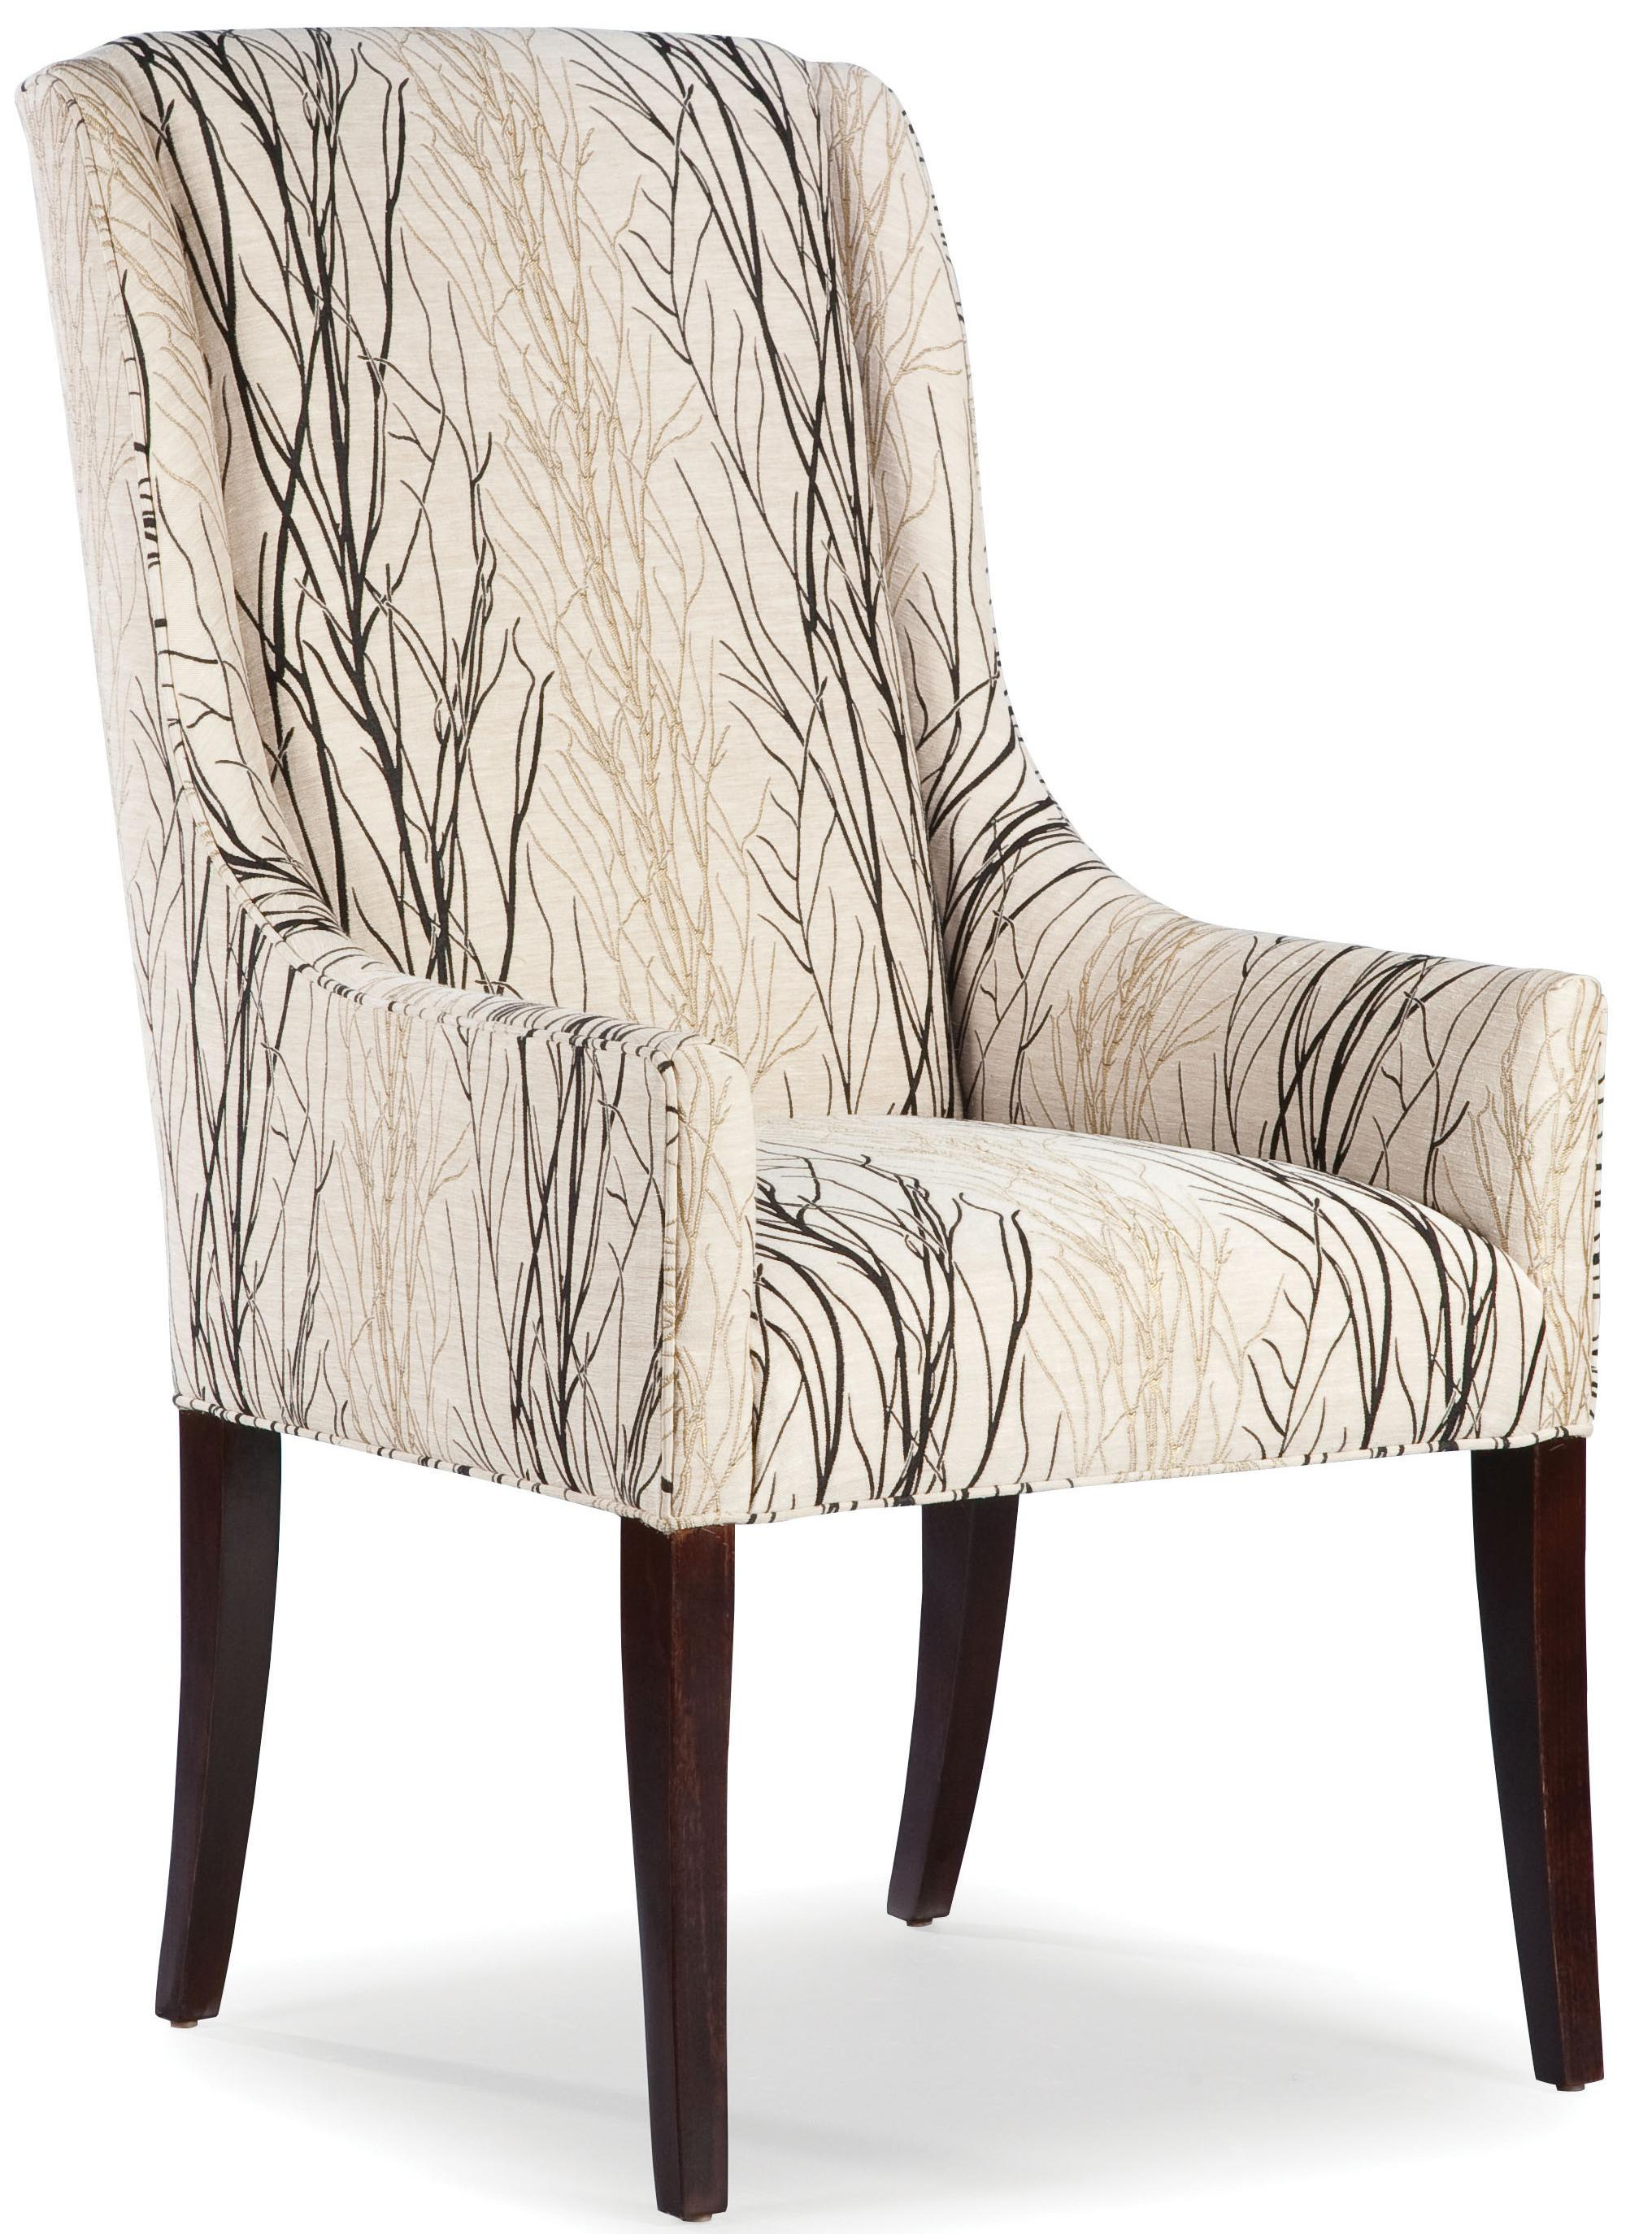 Fairfield Chairs Chairs Upholstered Tight Back Occasional Arm Chair By Fairfield At Howell Furniture